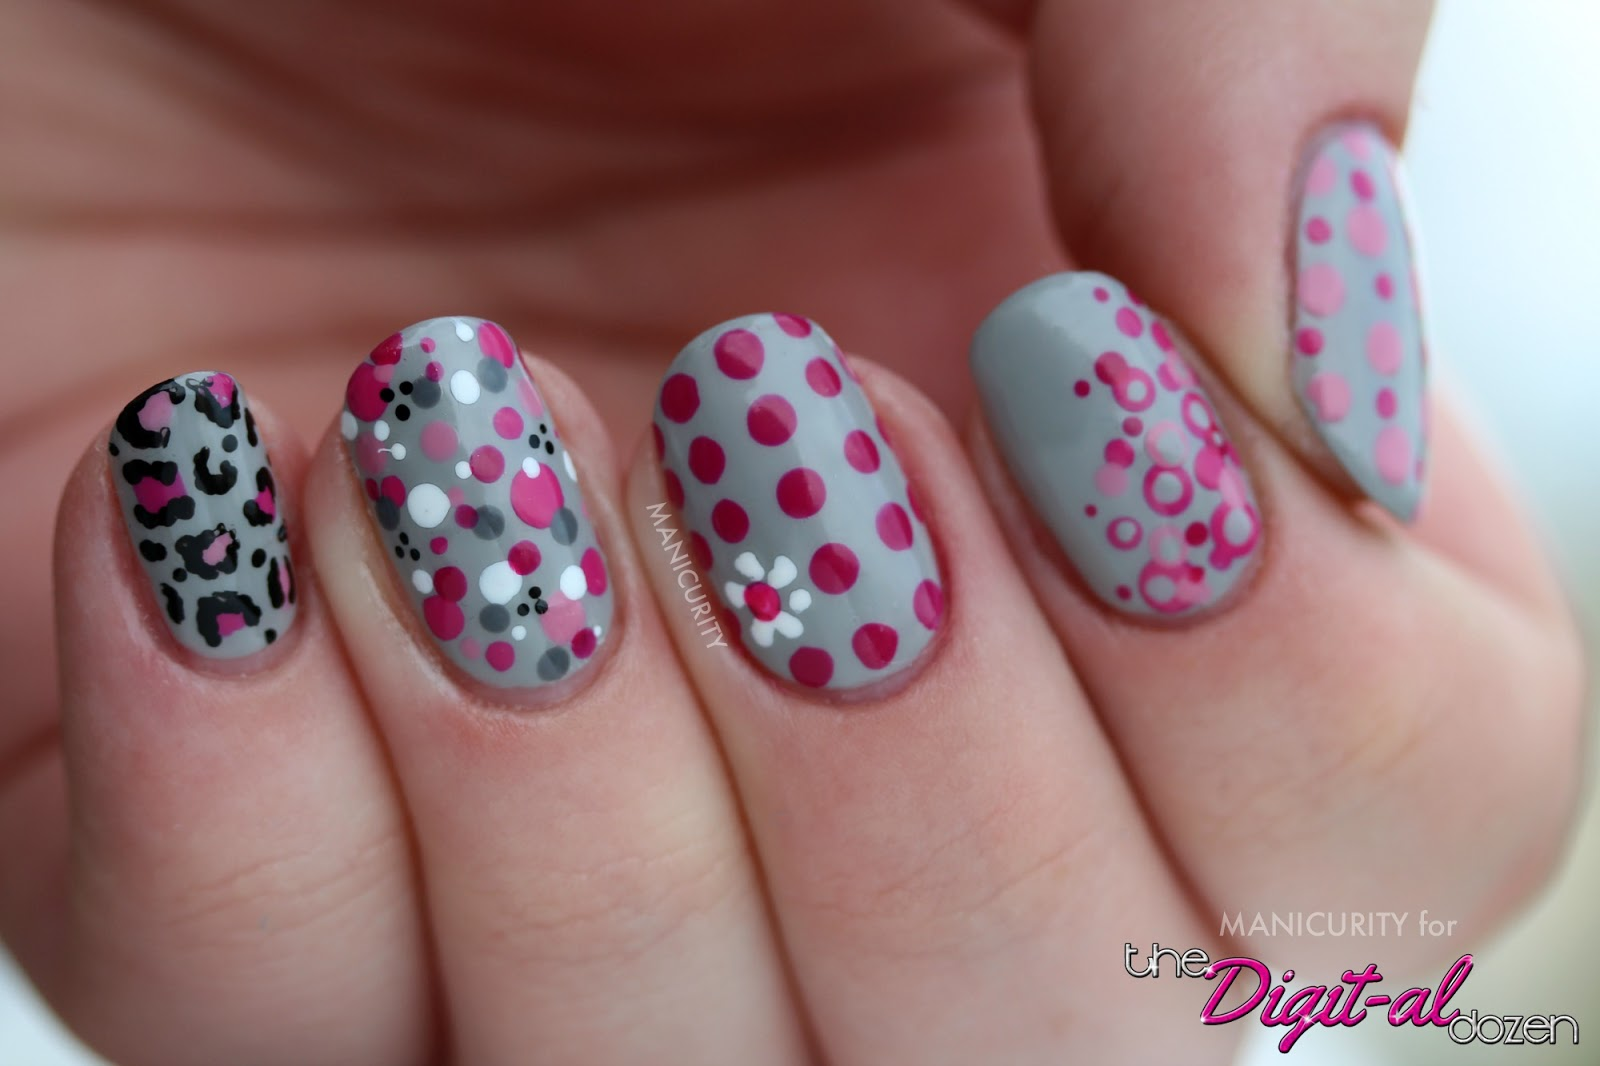 Nail art using dotting tool nail art designs dotting tools 101 nail art skittles using dotting prinsesfo Gallery